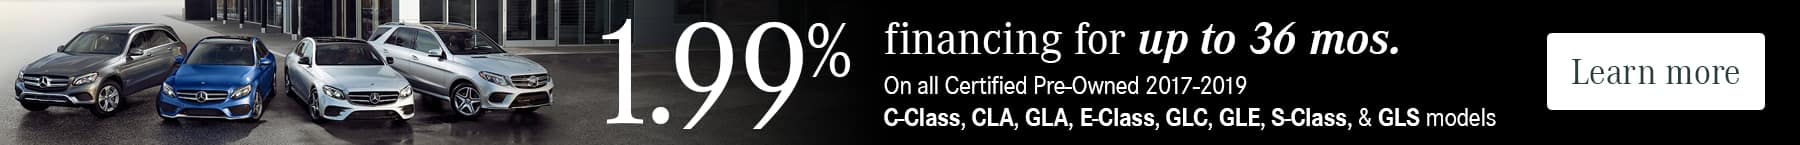 1.99% financing for up to 36 months on CPO